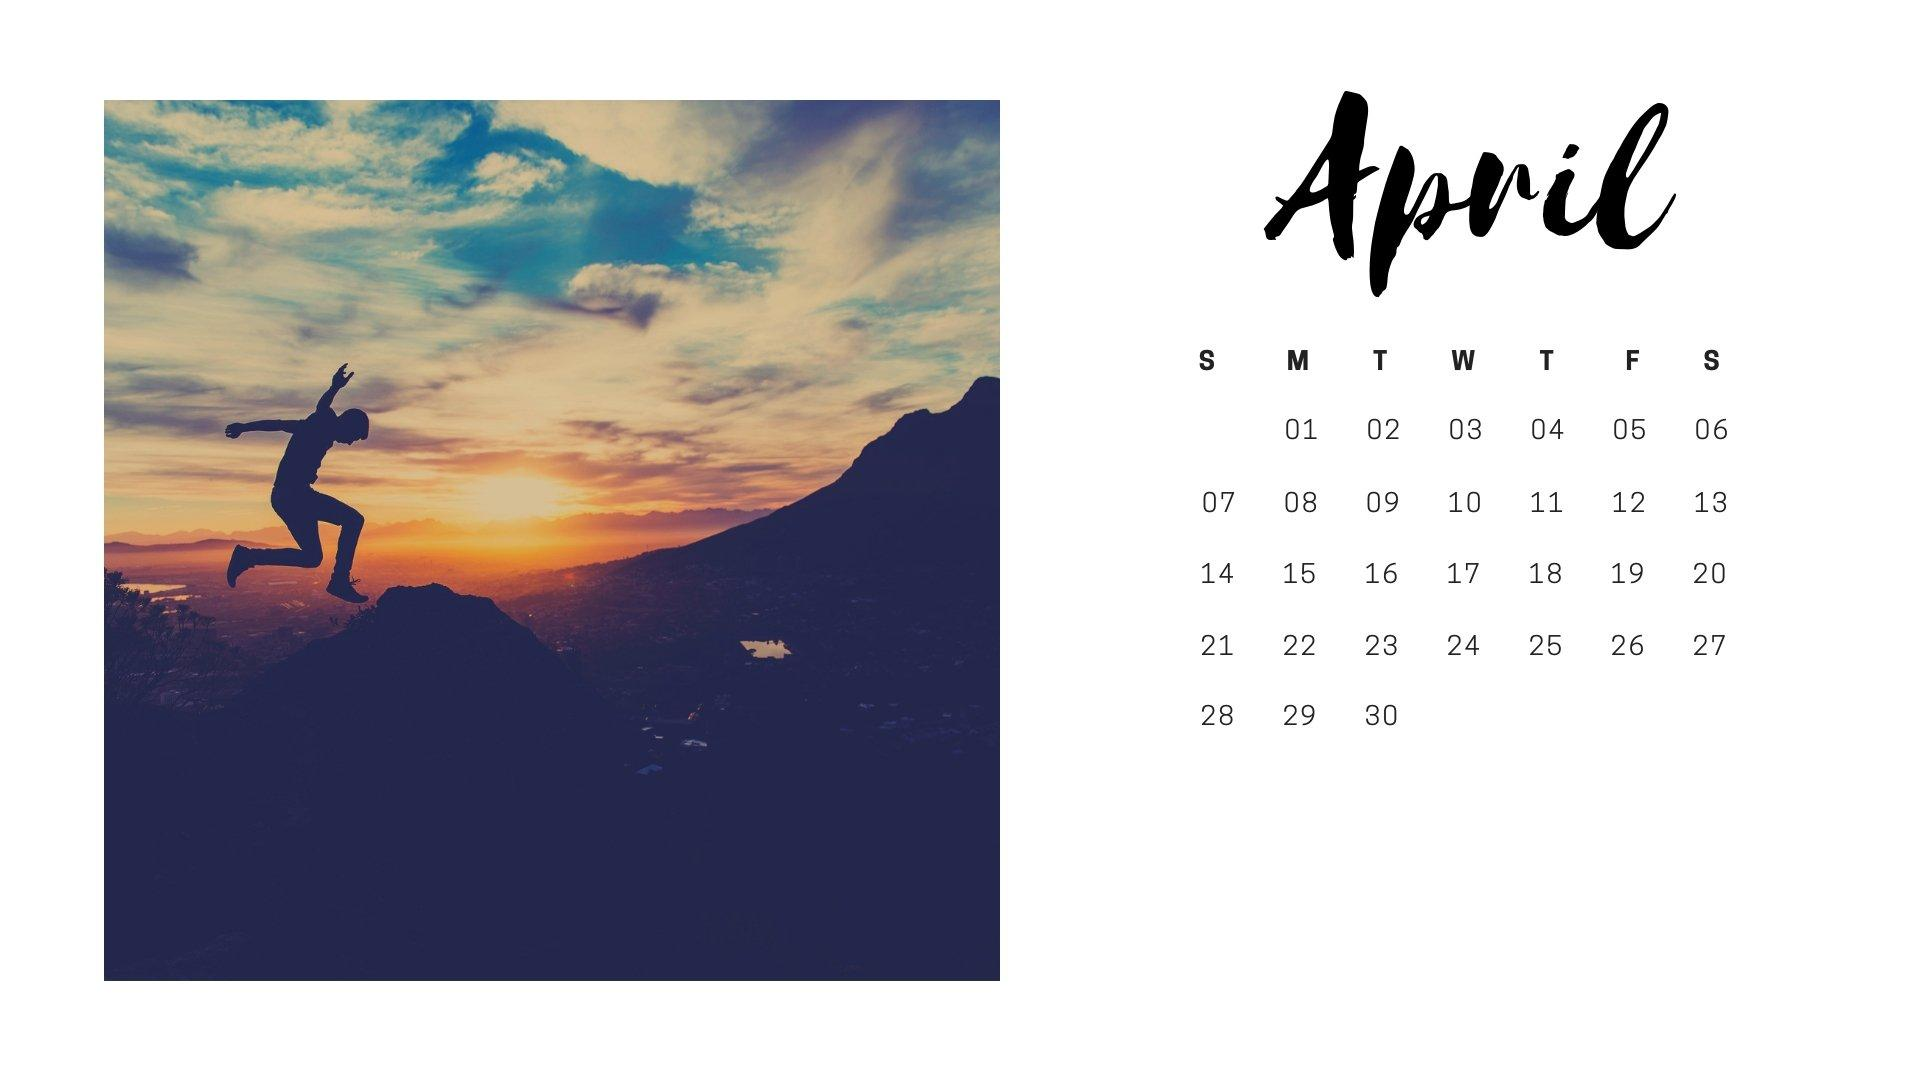 April 2019 Calendar Wallpapers Wallpaper Cave